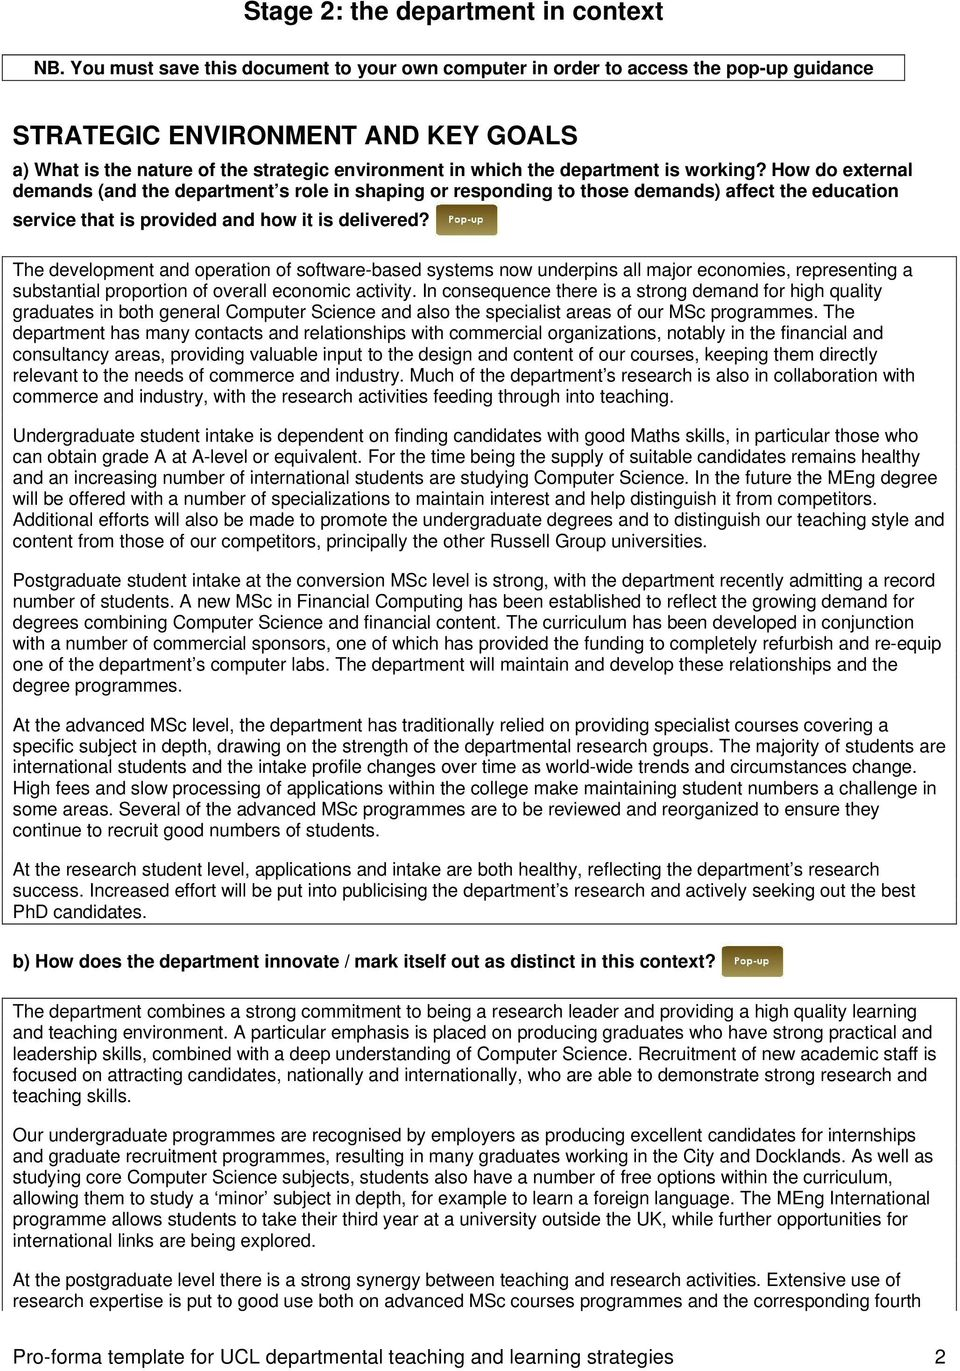 is working? How do external demands (and the department s role in shaping or responding to those demands) affect the education service that is provided and how it is delivered?